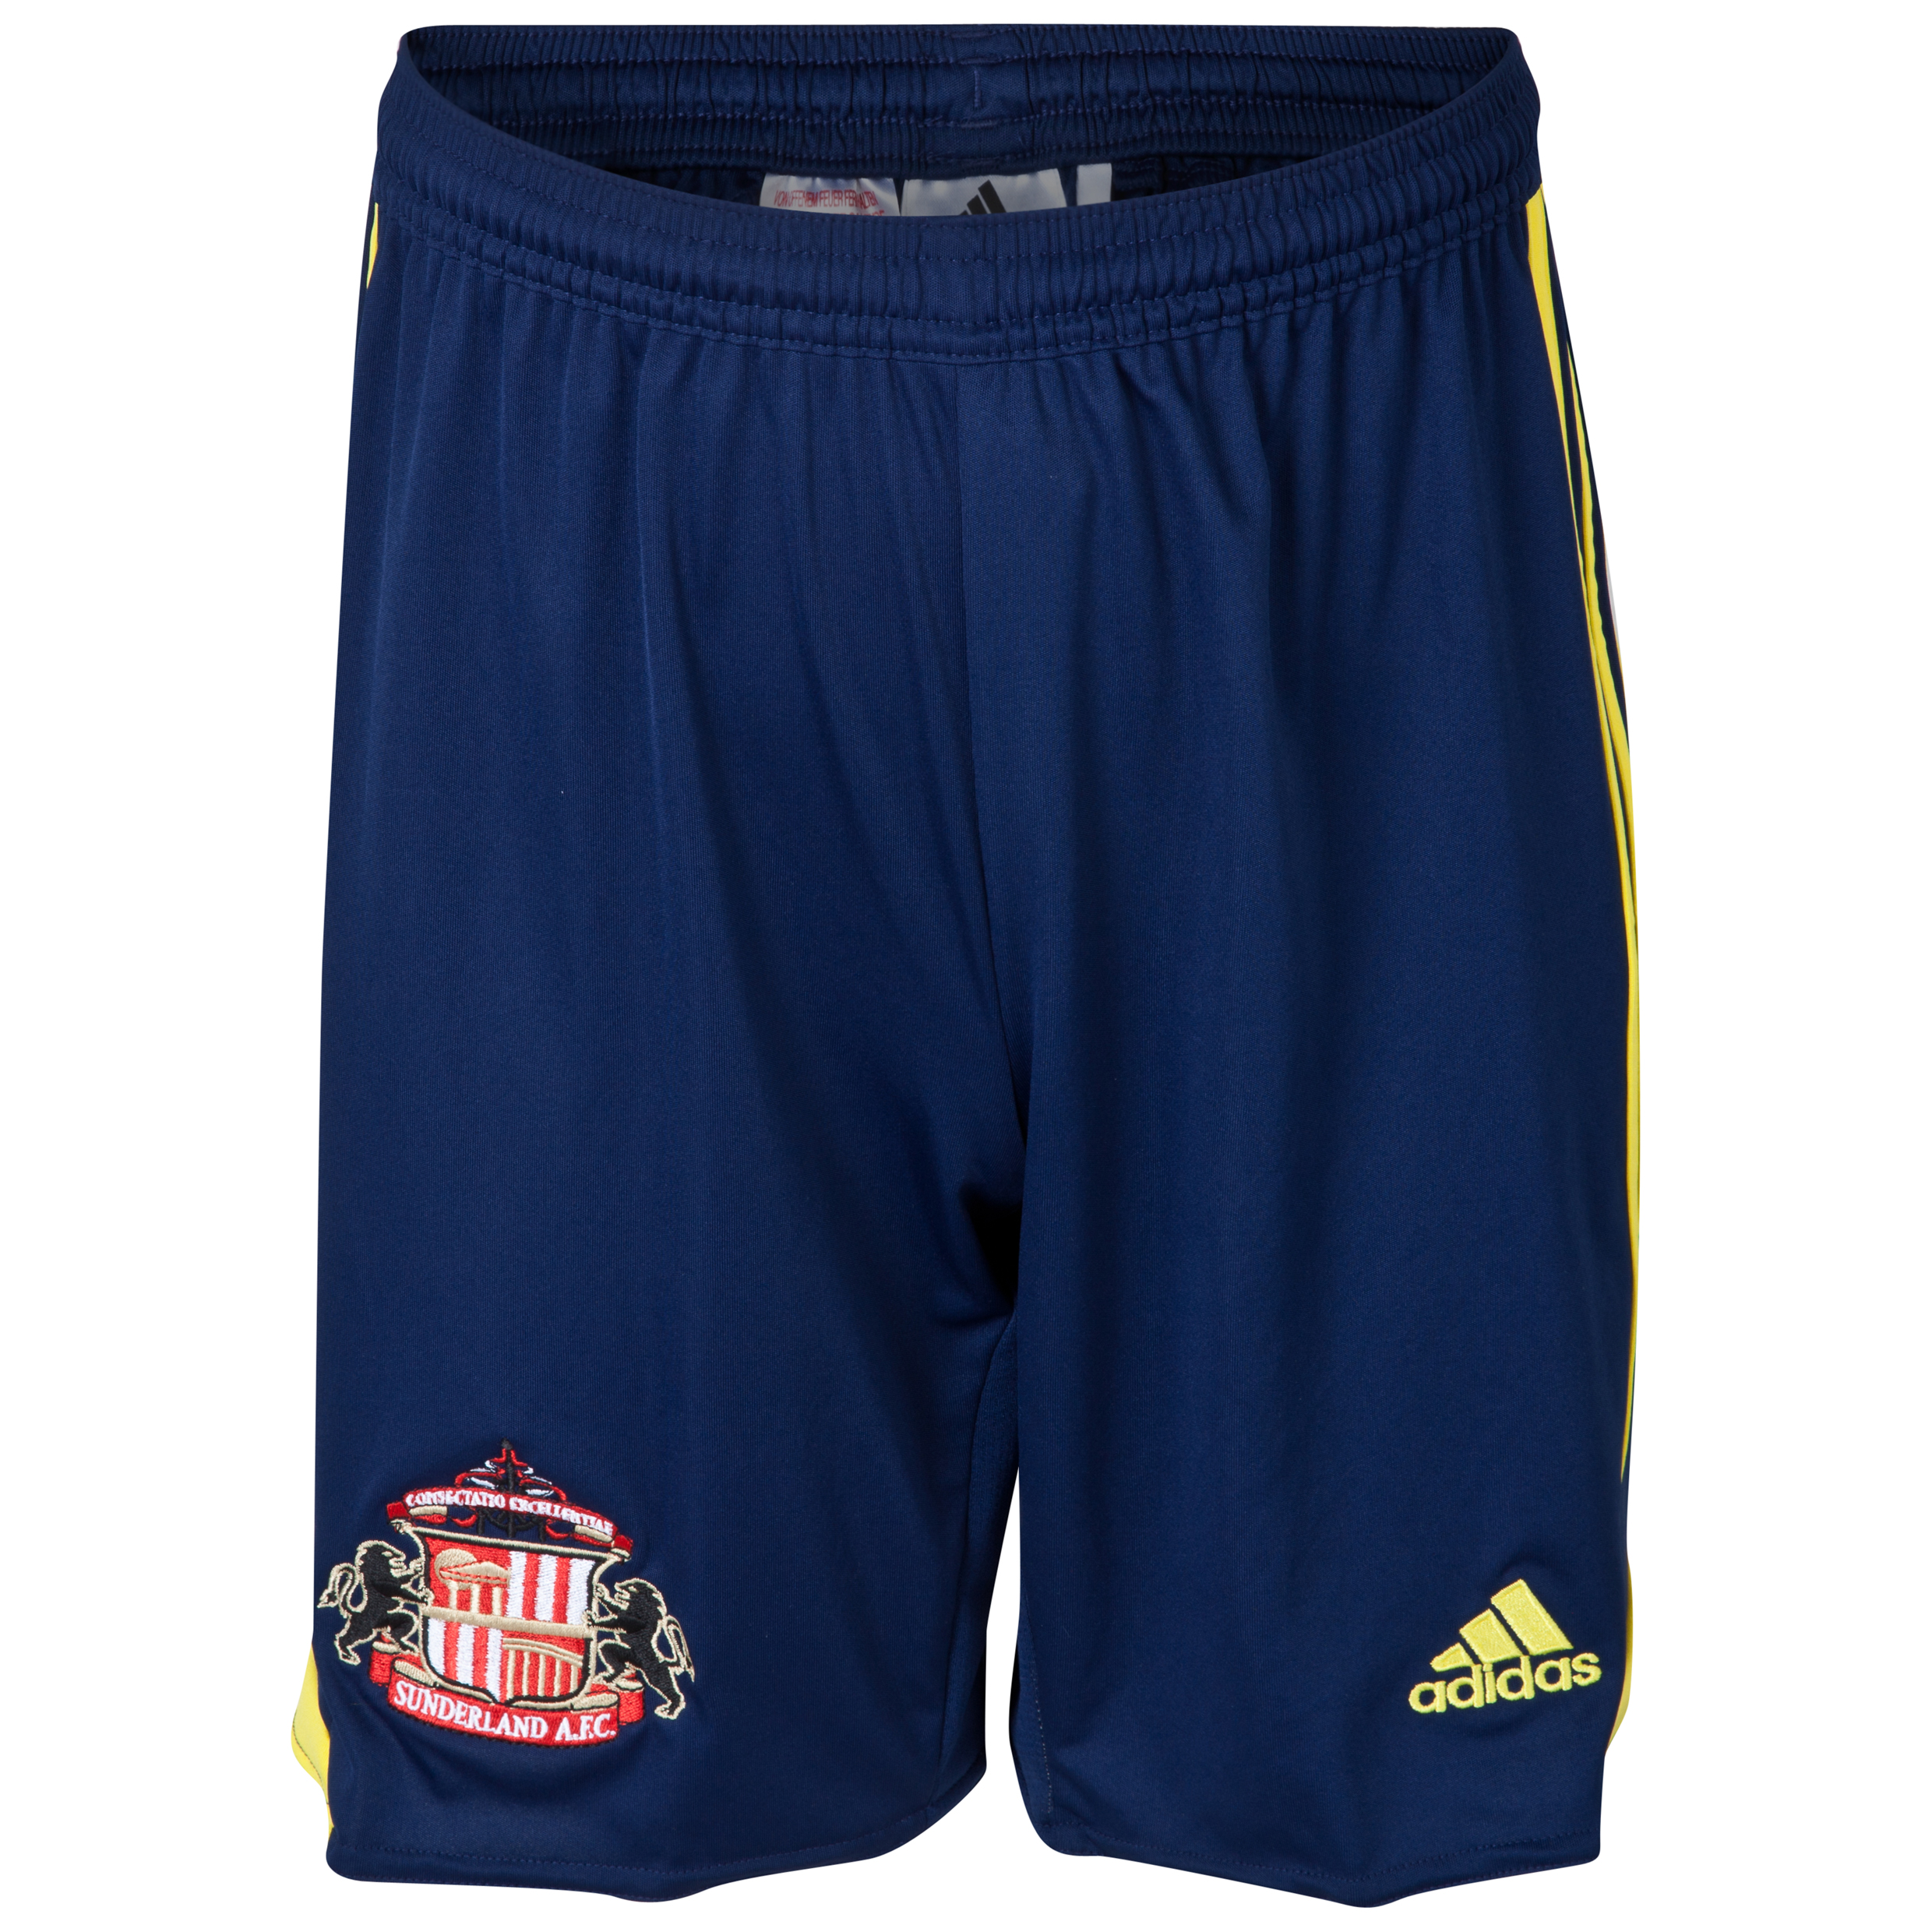 Sunderland Away Short 2013/14